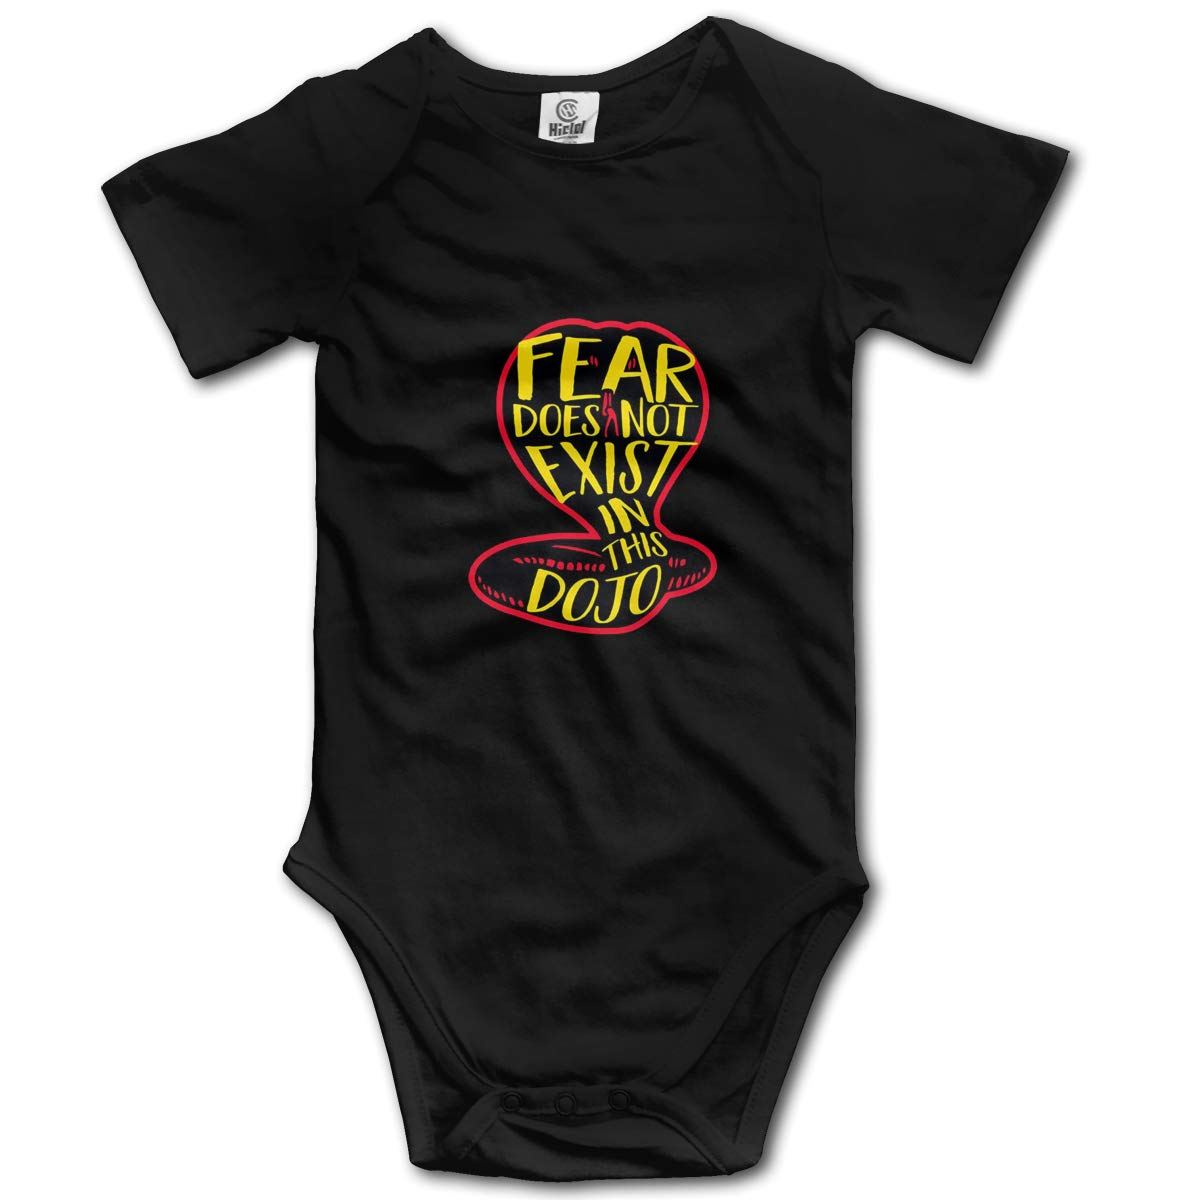 Fear Does Not Exist in This Dojo Newborn Infant Toddler Baby Girls Boys Bodysuit Short Sleeve 0-24 MonthsBlack